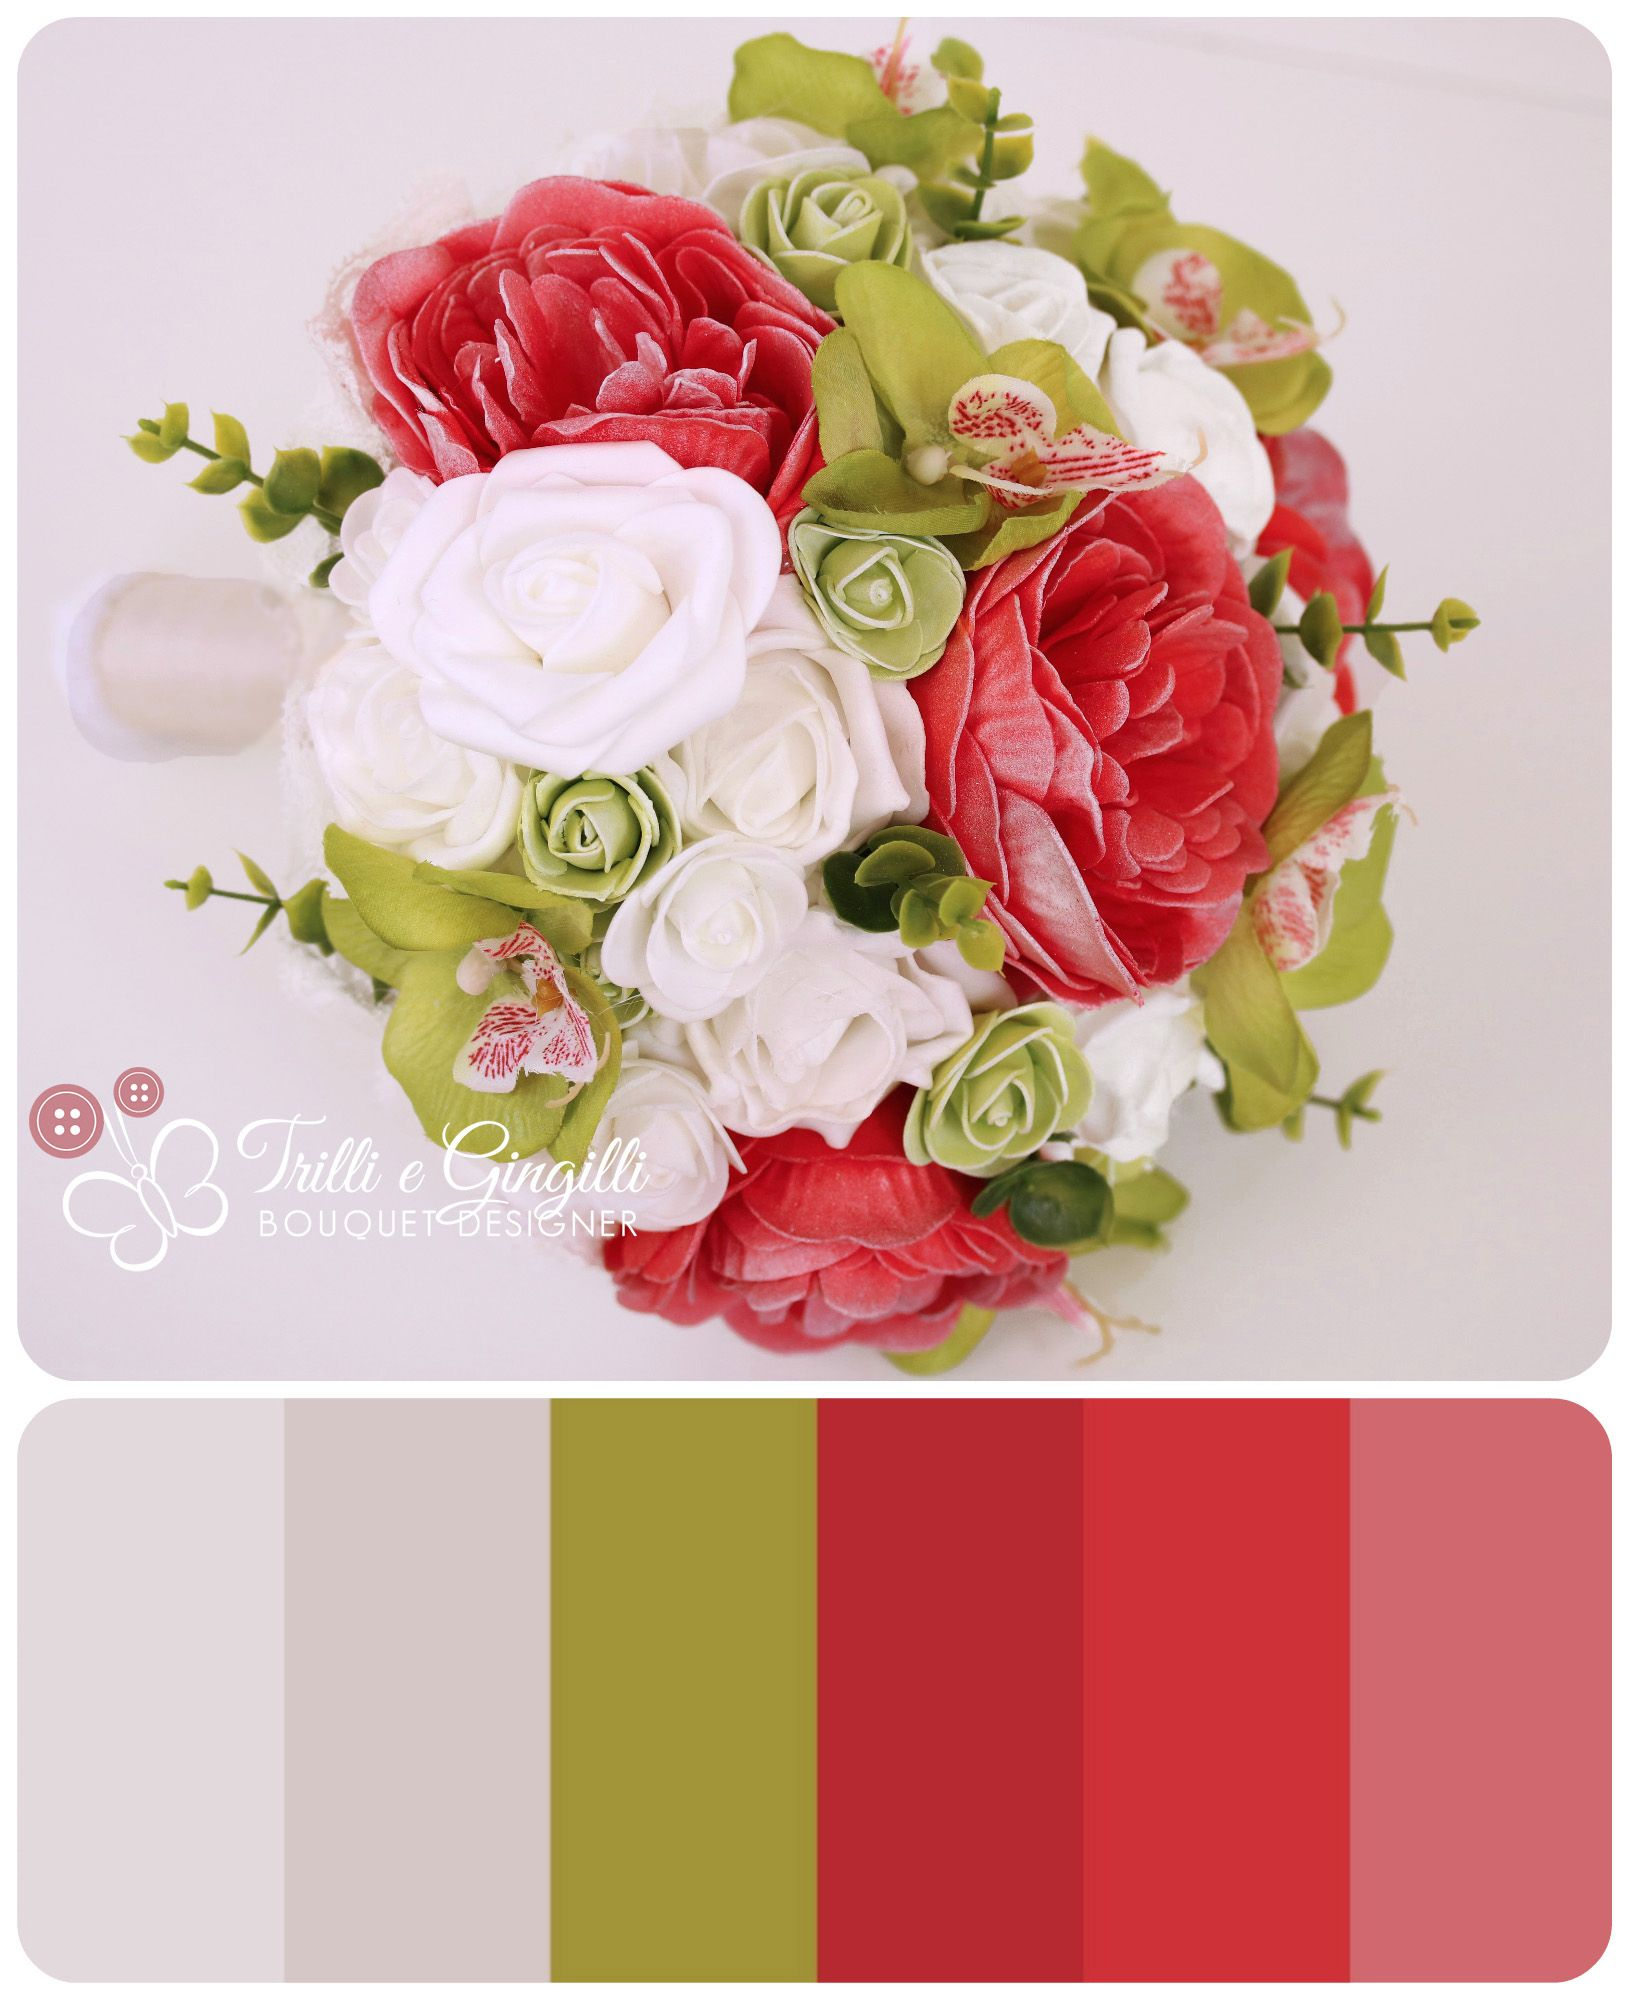 Bouquet Sposa Verde Mela.Wedding Bridal Bouquet Color Palette Green Red White Peony And